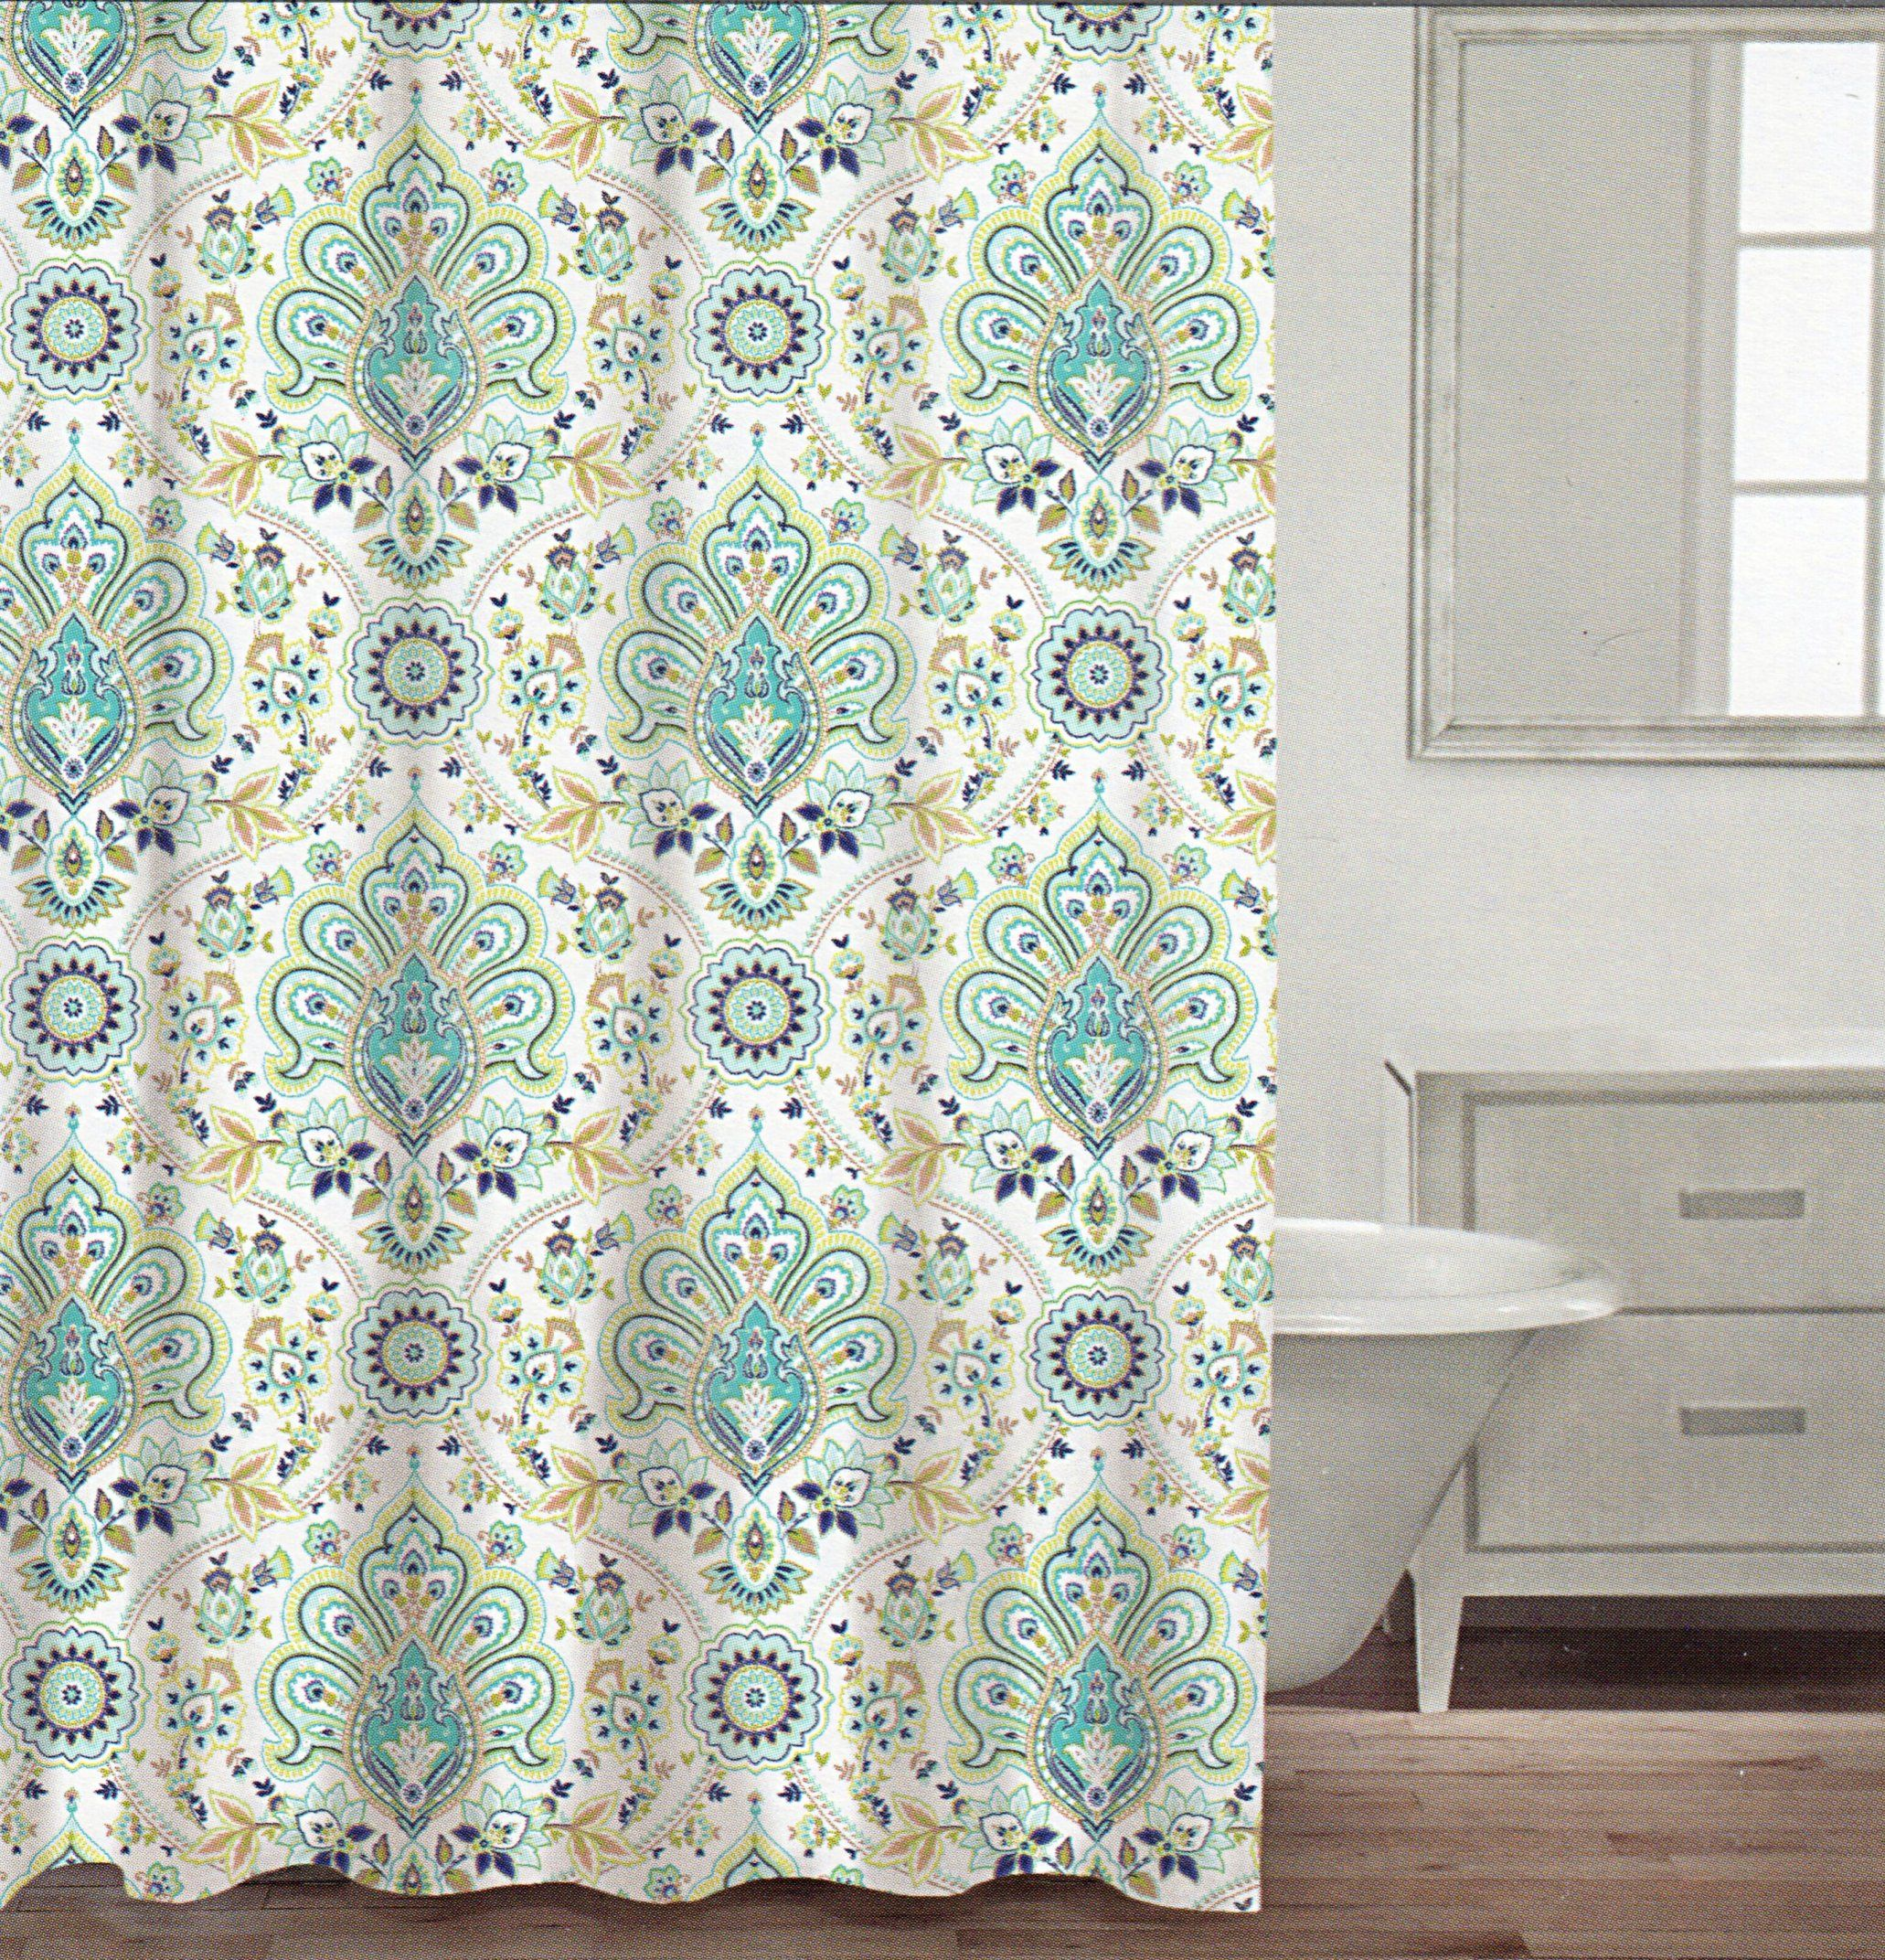 Caro Home 100 Cotton Shower Curtain Floral Paisley Medallions F